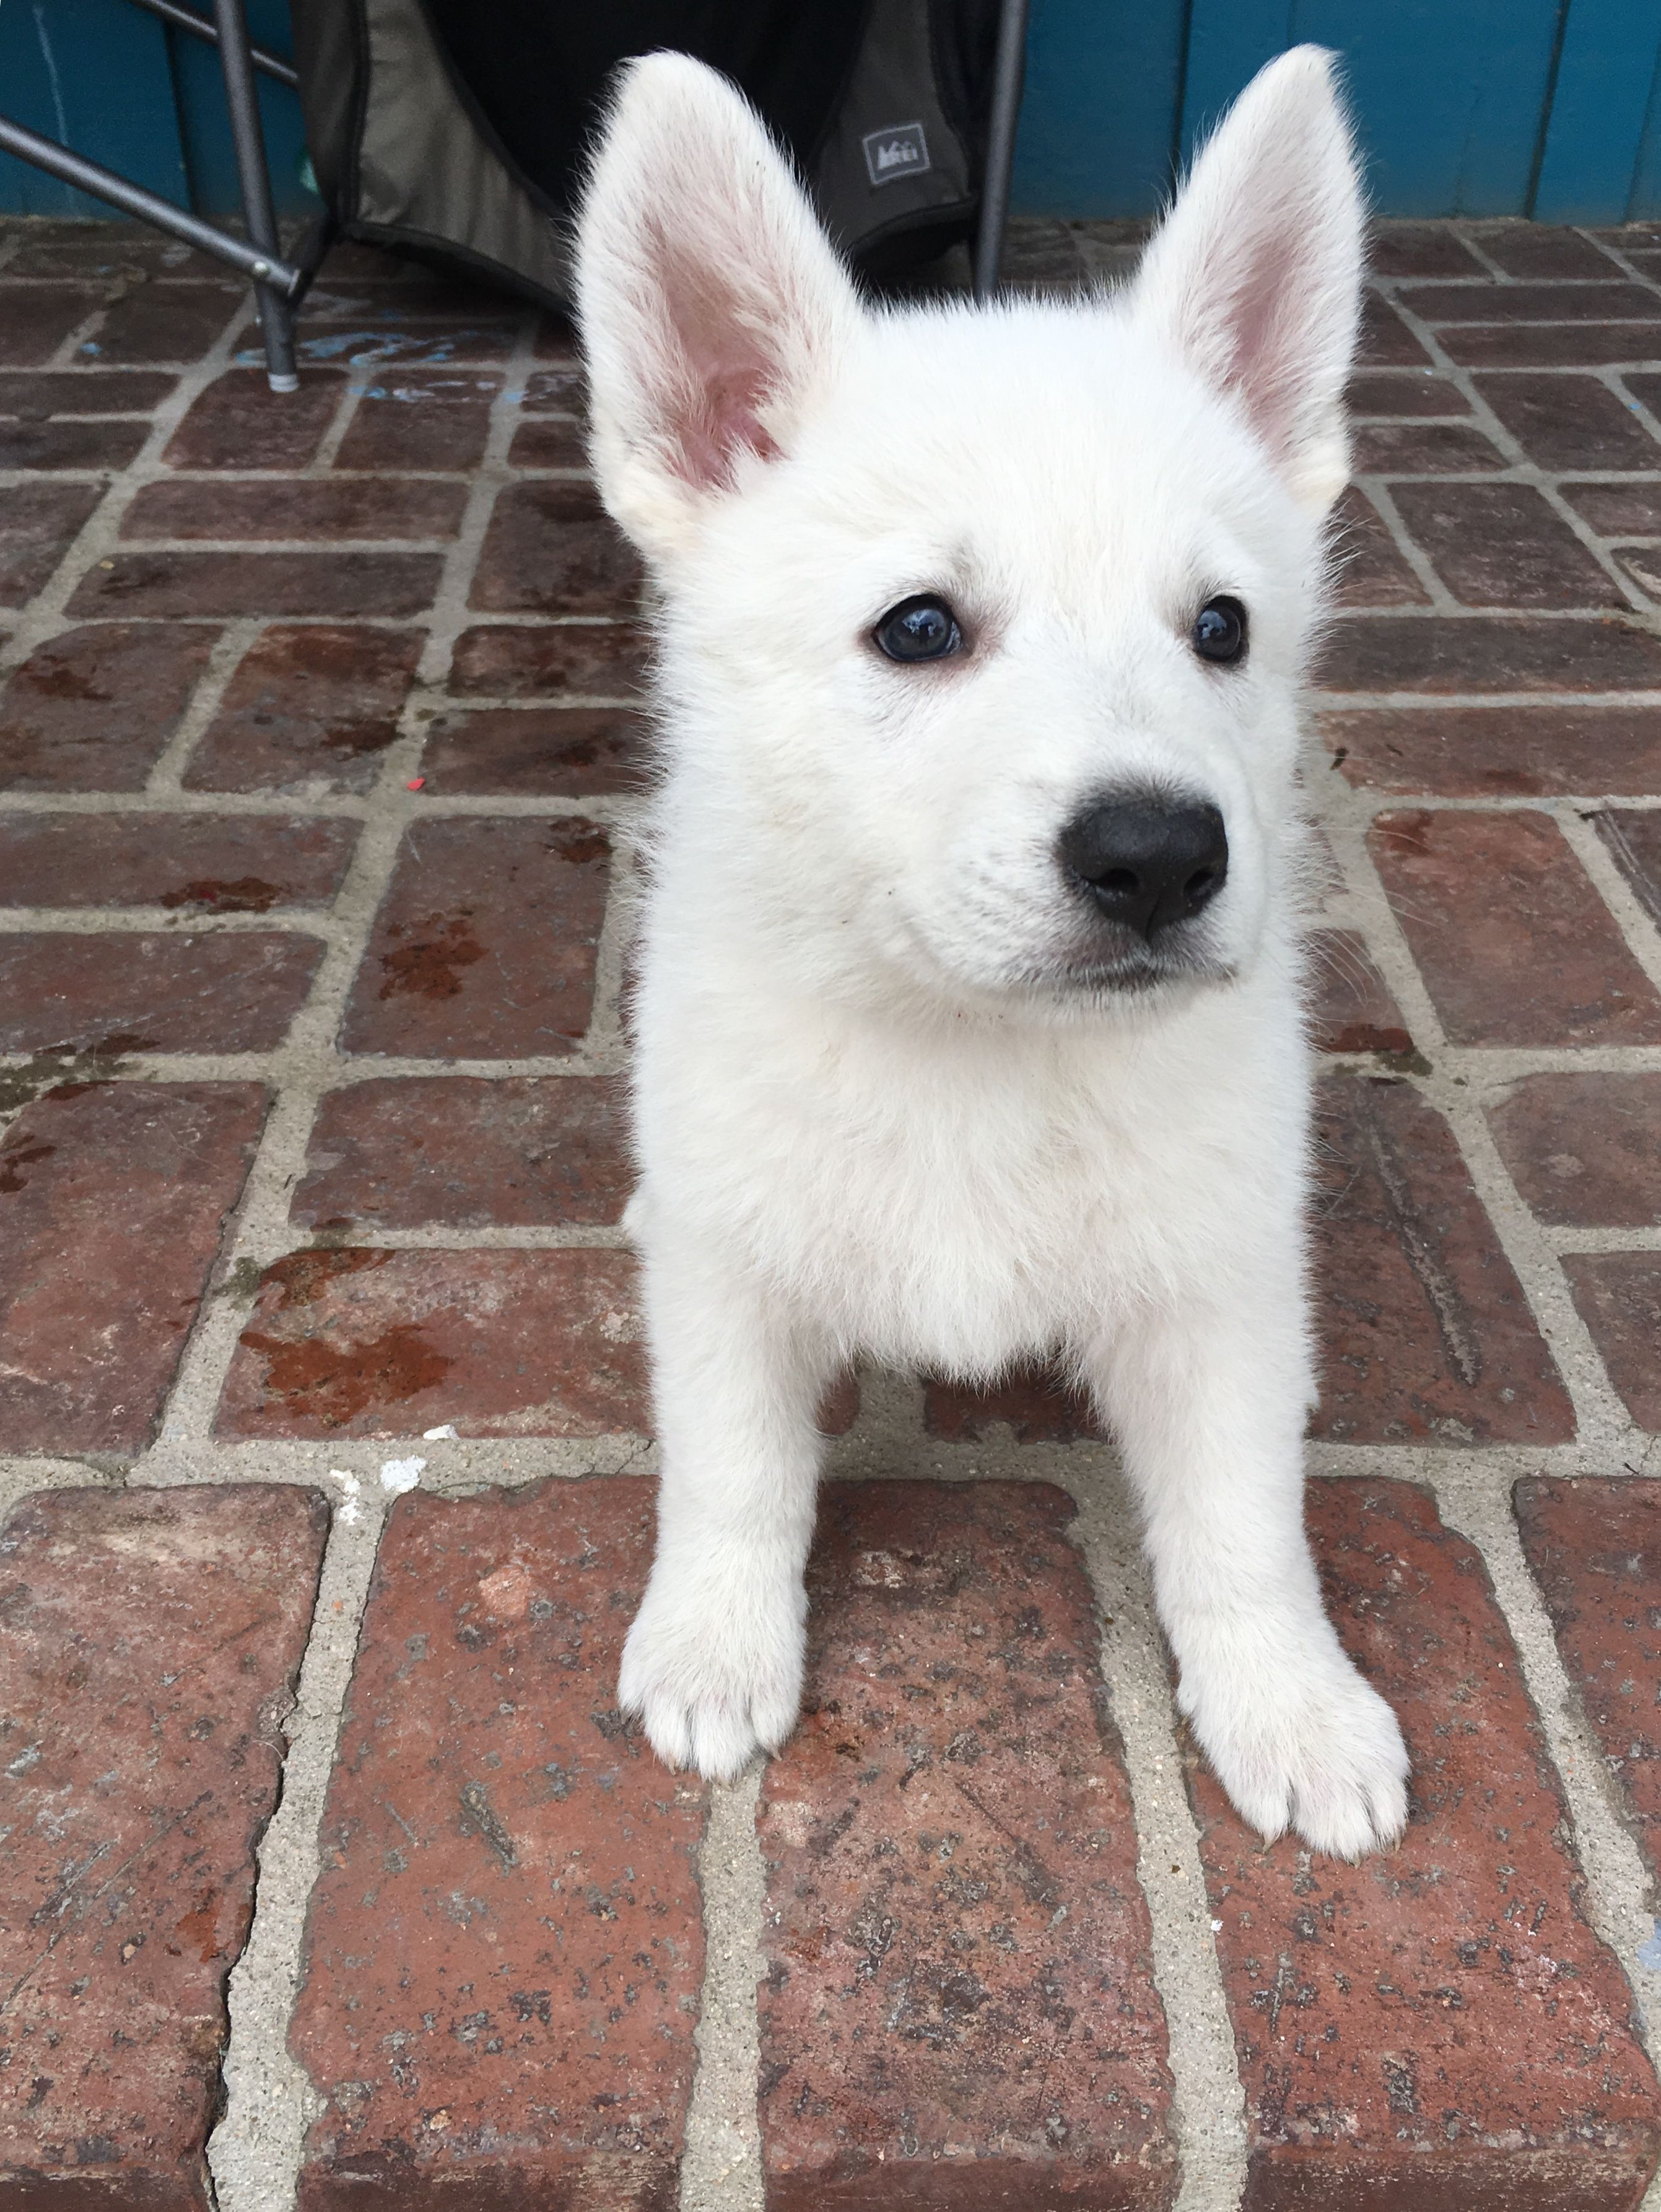 Red Girl A Ukc White Shepherd Puppy For Sale In Fullerton